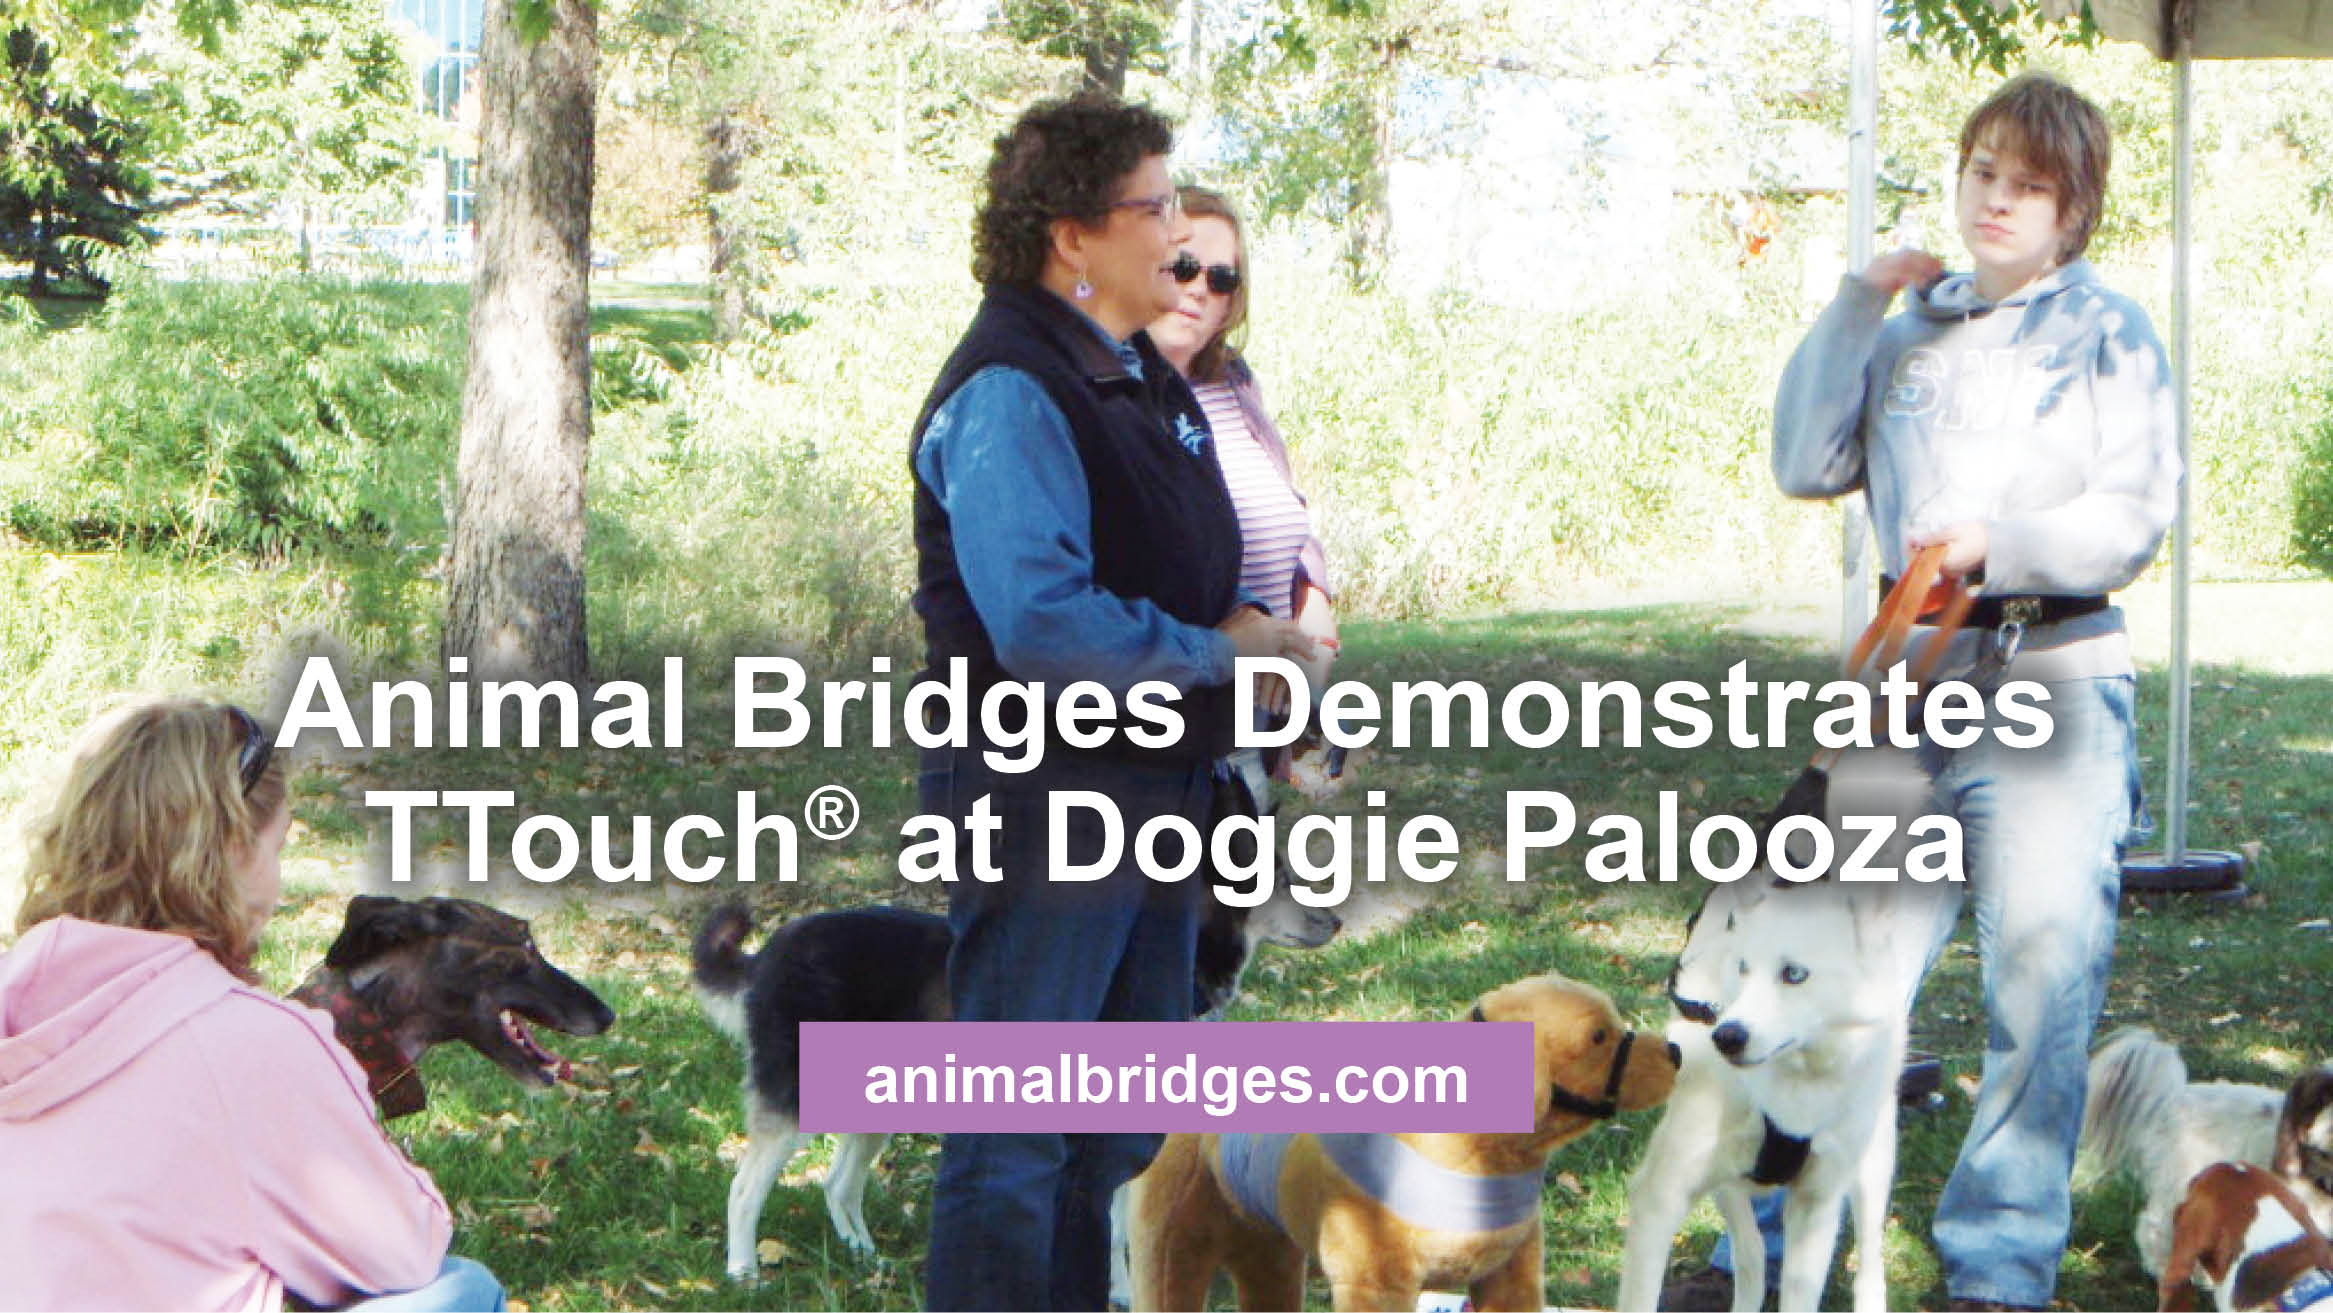 Animal Bridges Demonstrates TTouch® at Doggie Palooza